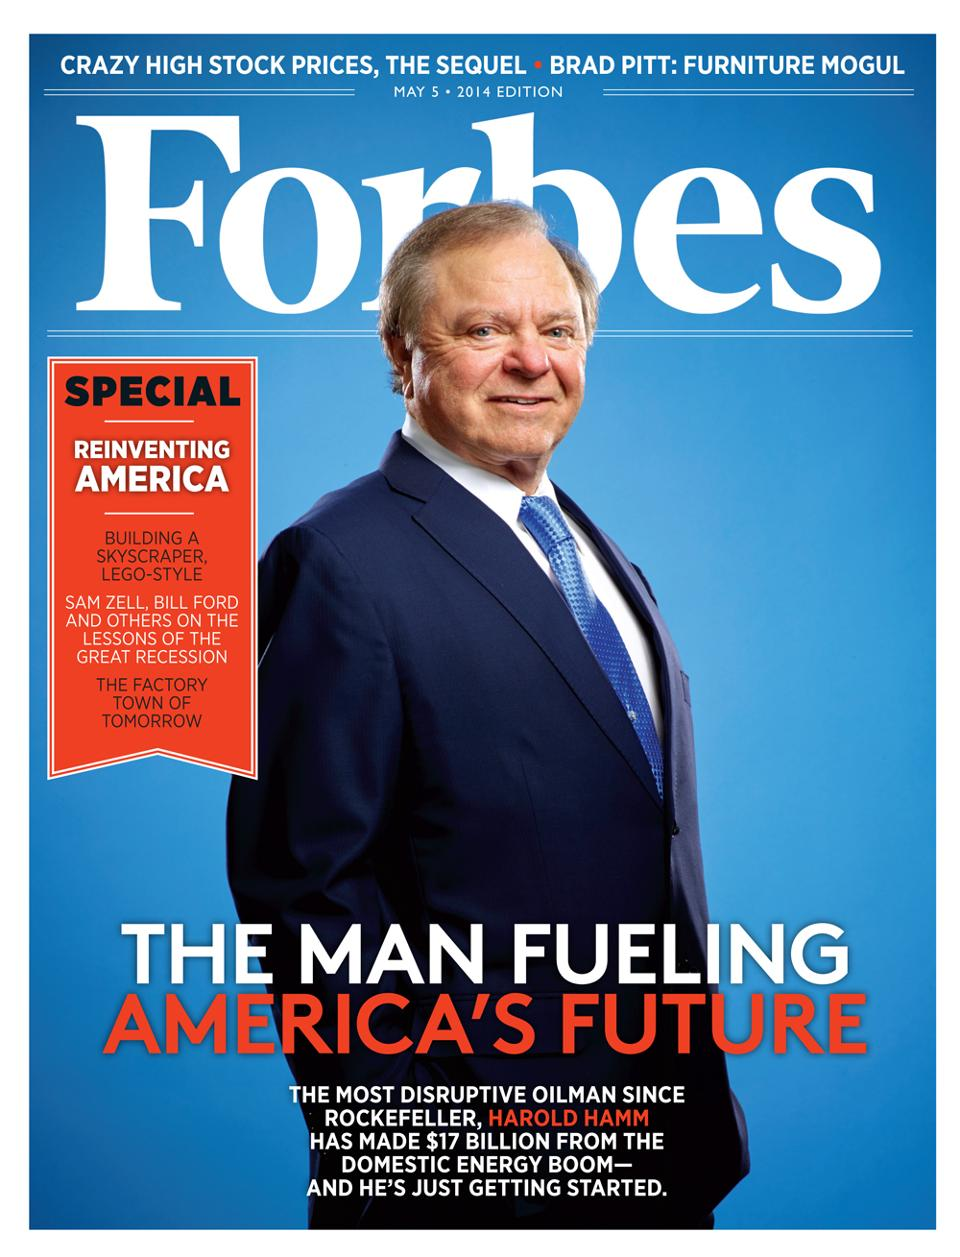 Forbes cover 2014.